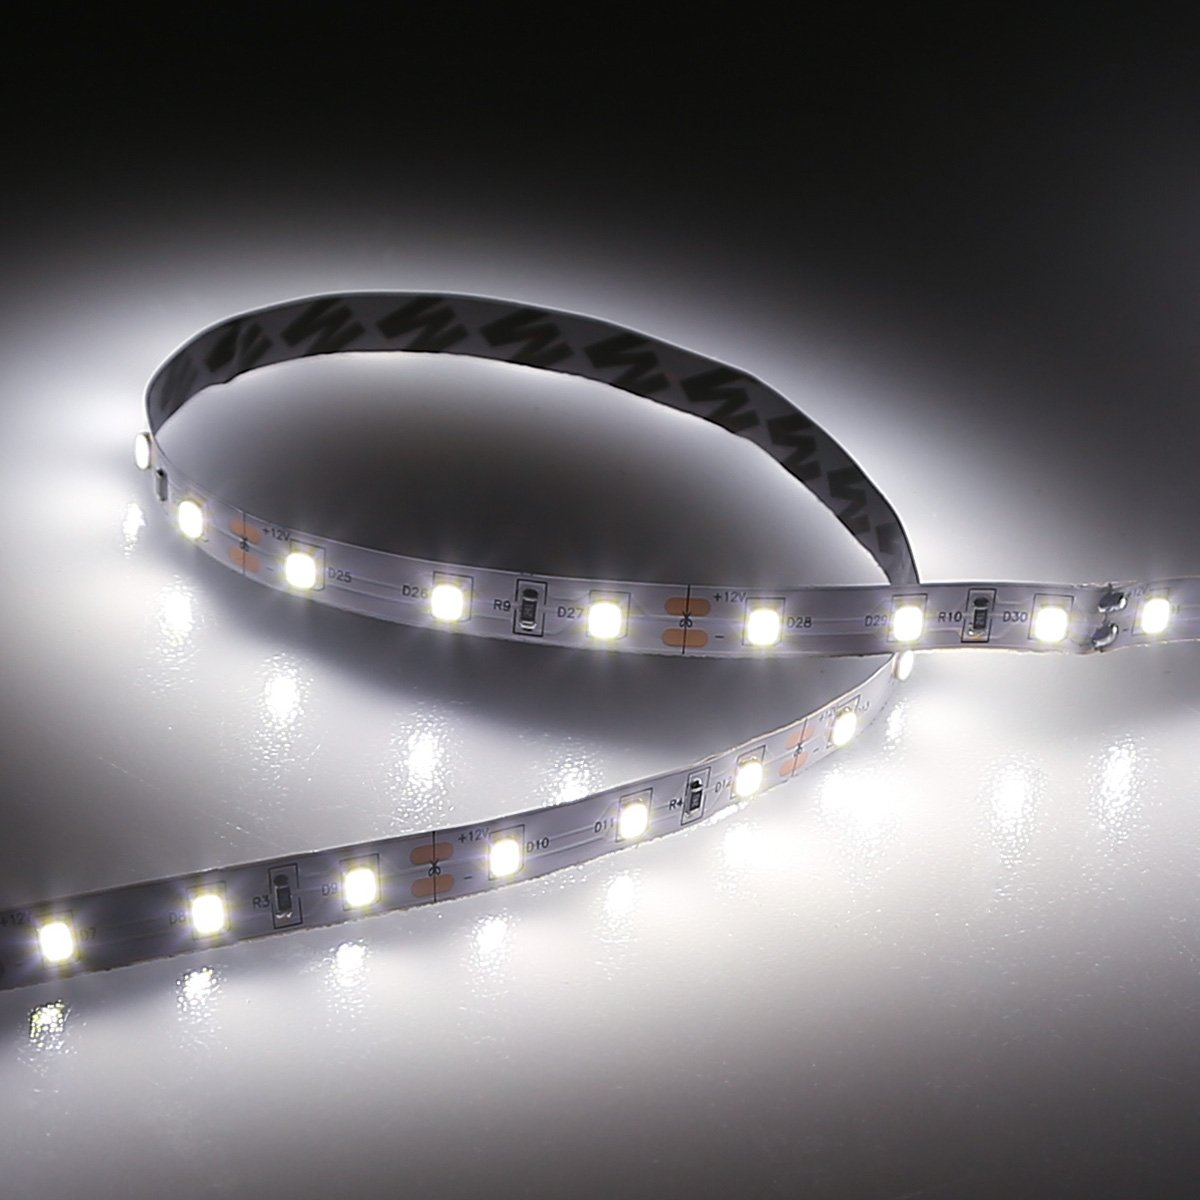 Amazon le 12v led strip light flexible daylight white smd amazon le 12v led strip light flexible daylight white smd 2835 5m tape light for home kitchen party christmas and more non waterproof home aloadofball Images